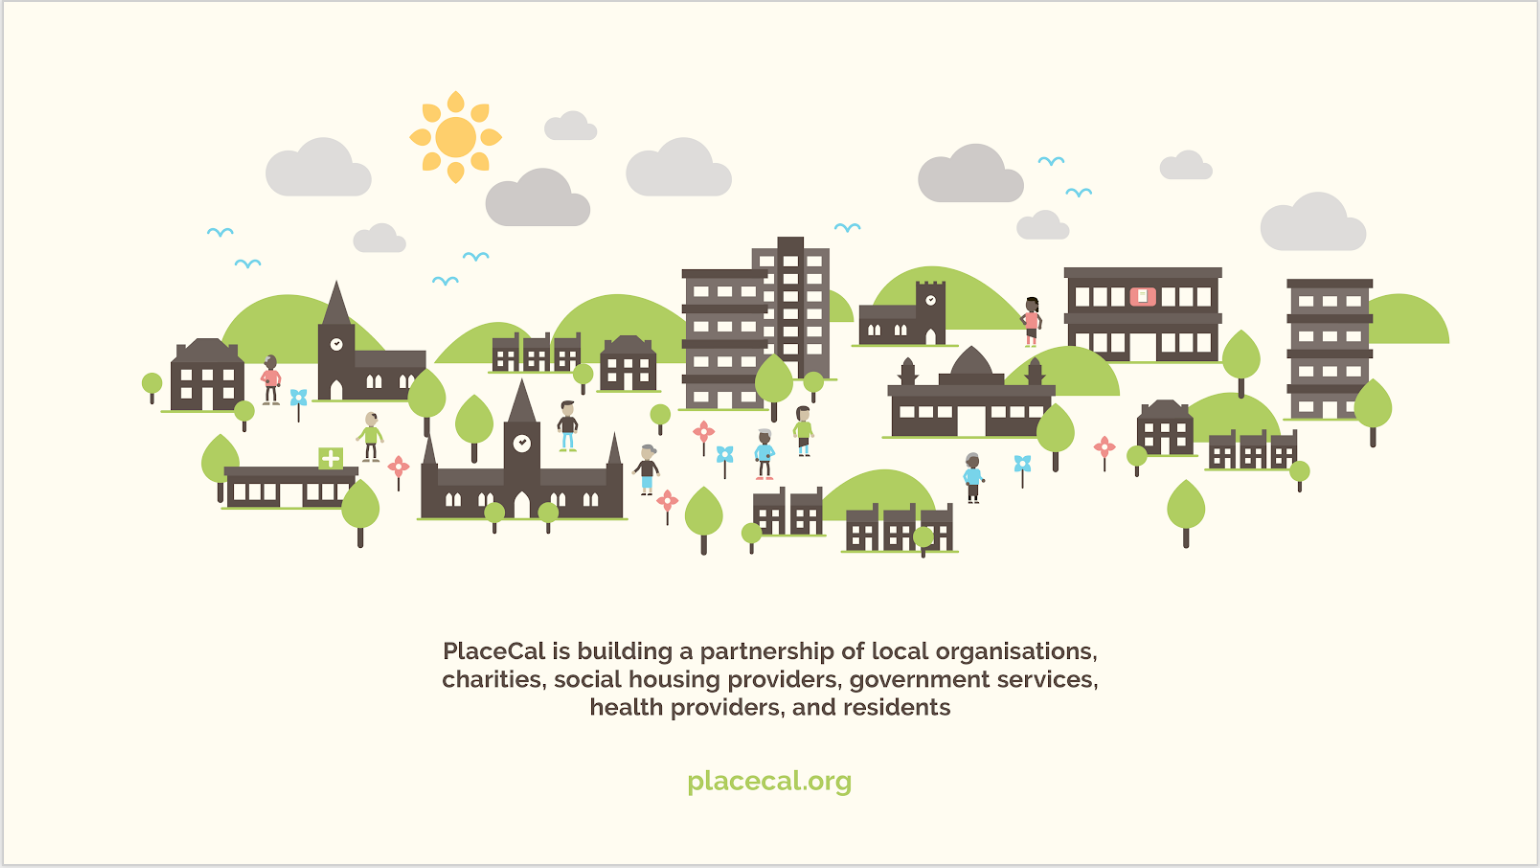 PlaceCal community